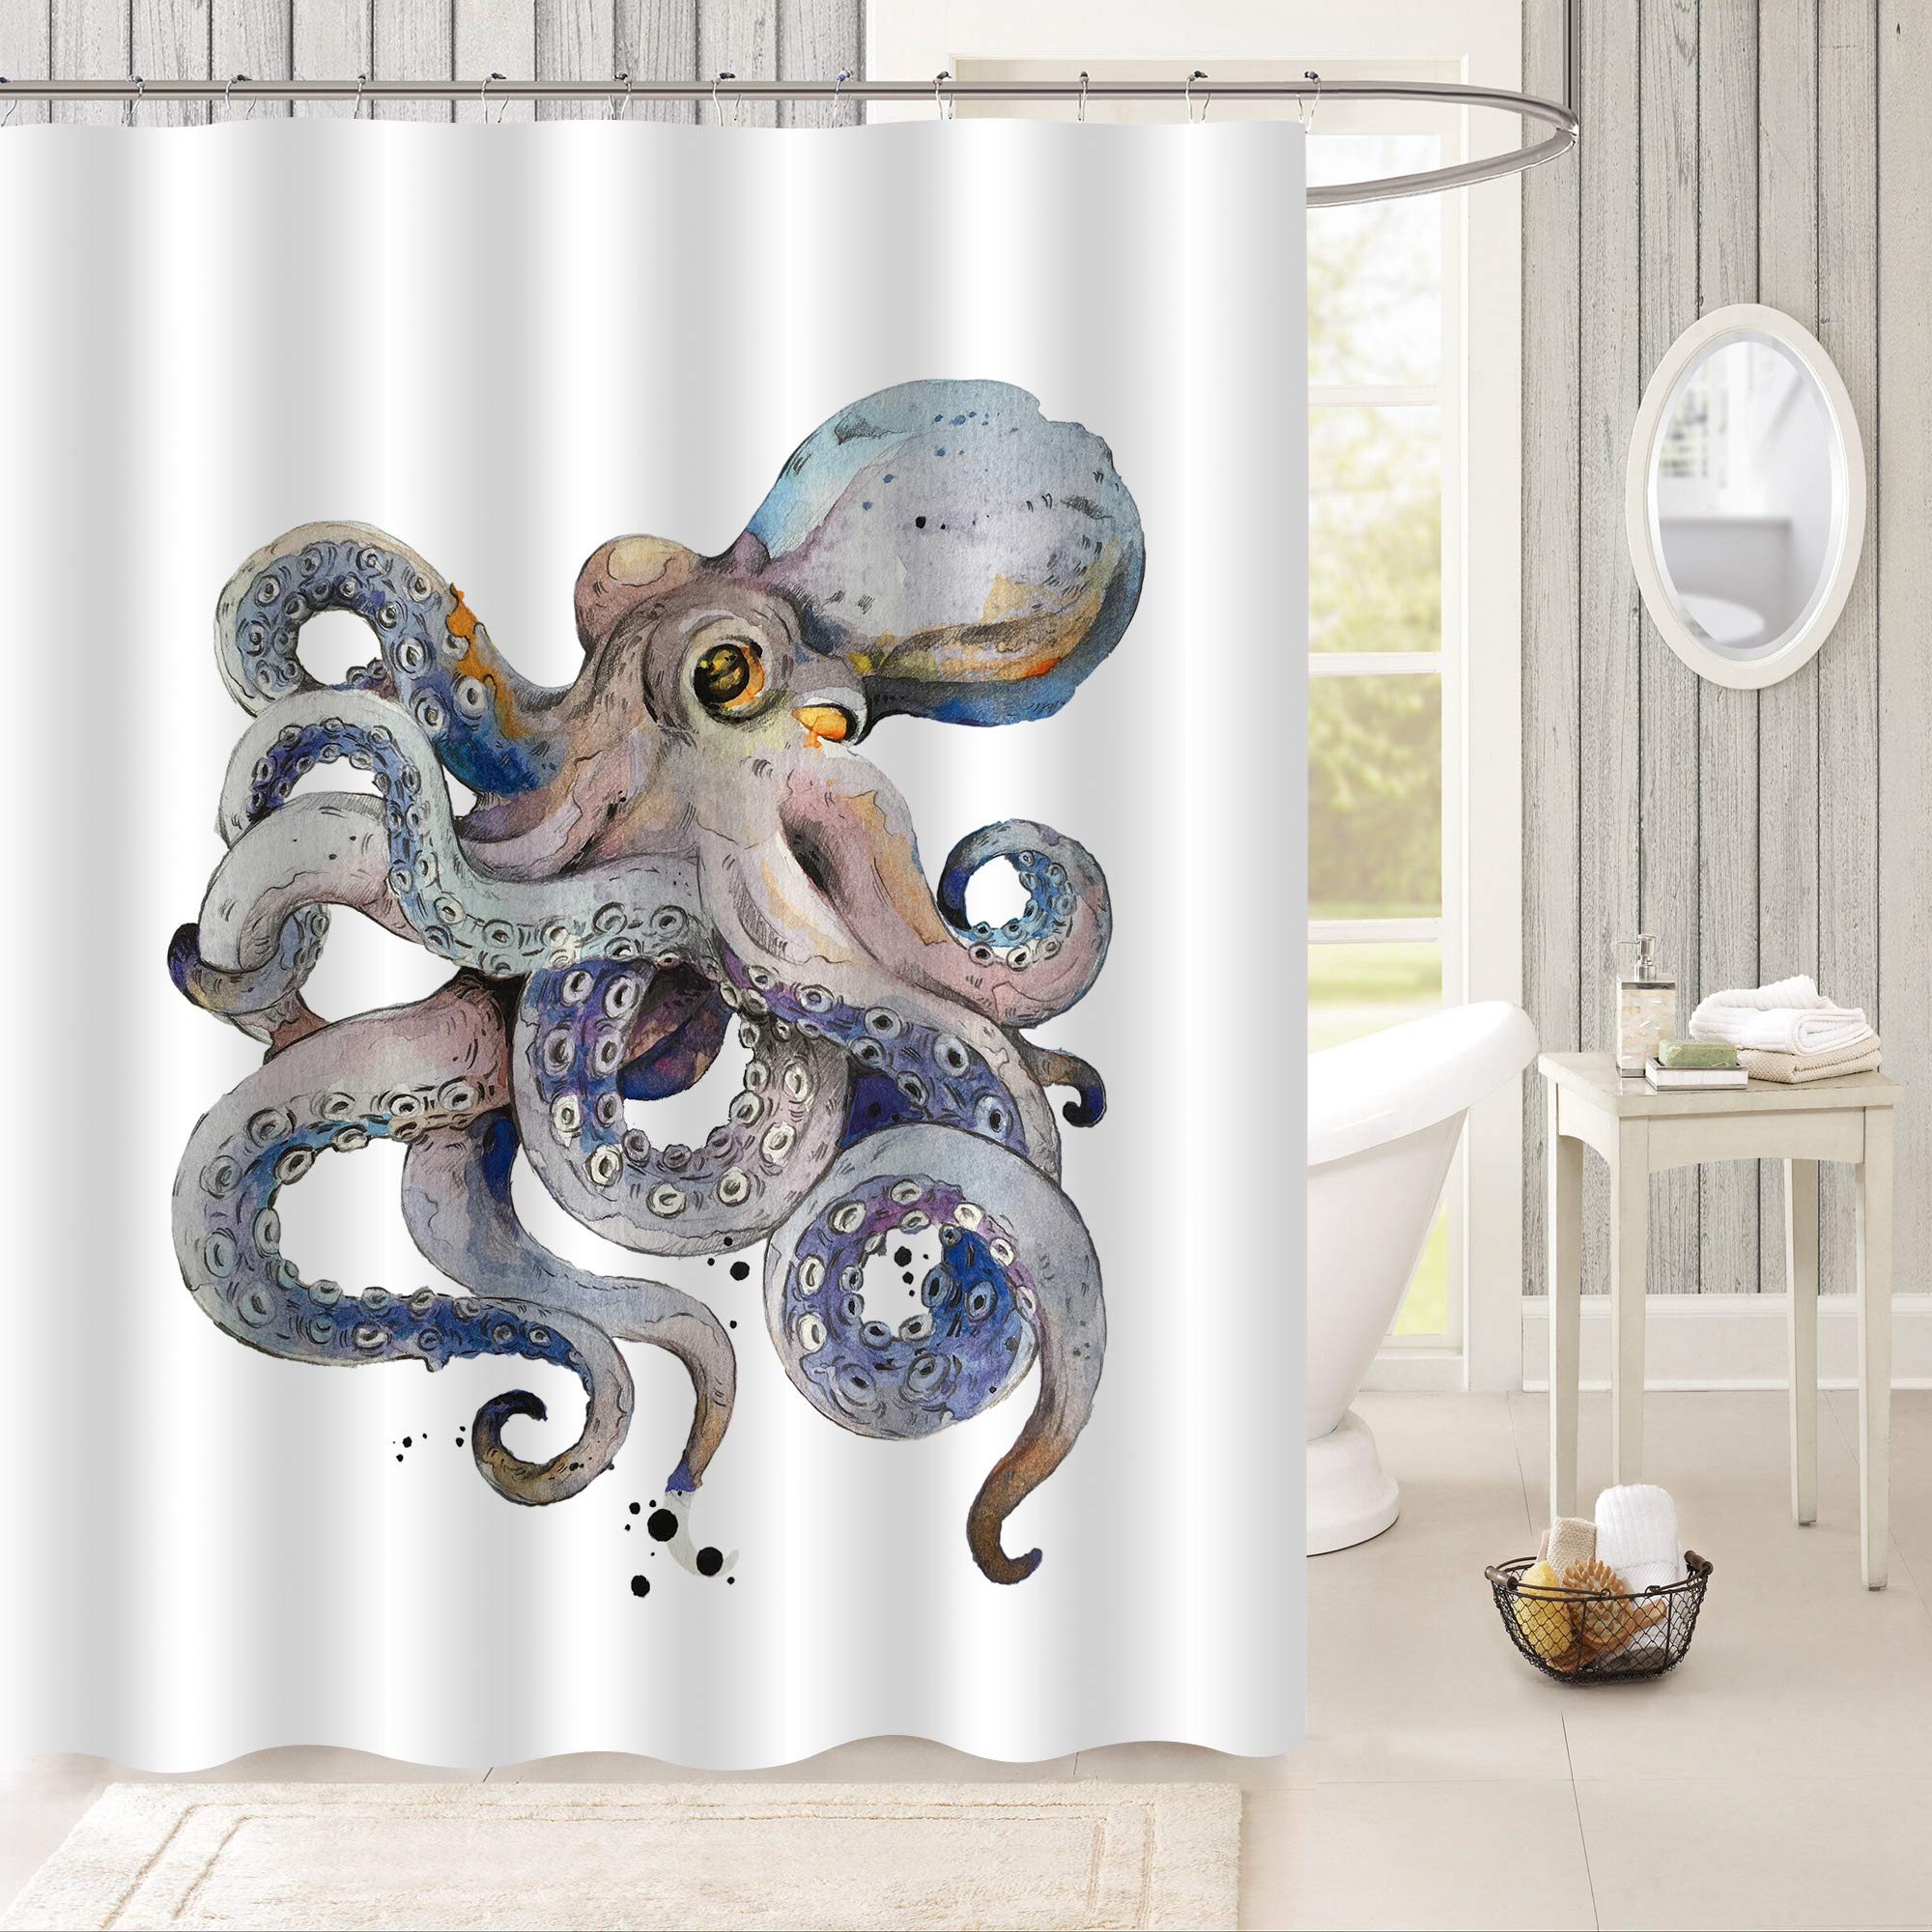 """MitoVilla Retro Octopus Kraken Shower Curtain, Cartoon Cute Octopus Watercolor Painting Wildlife Bathroom Decor for Baby Boy, Mens and Ocean Animal Lovers Gifts, Grey, 72"""" W x 72"""" L for Shower Tub"""